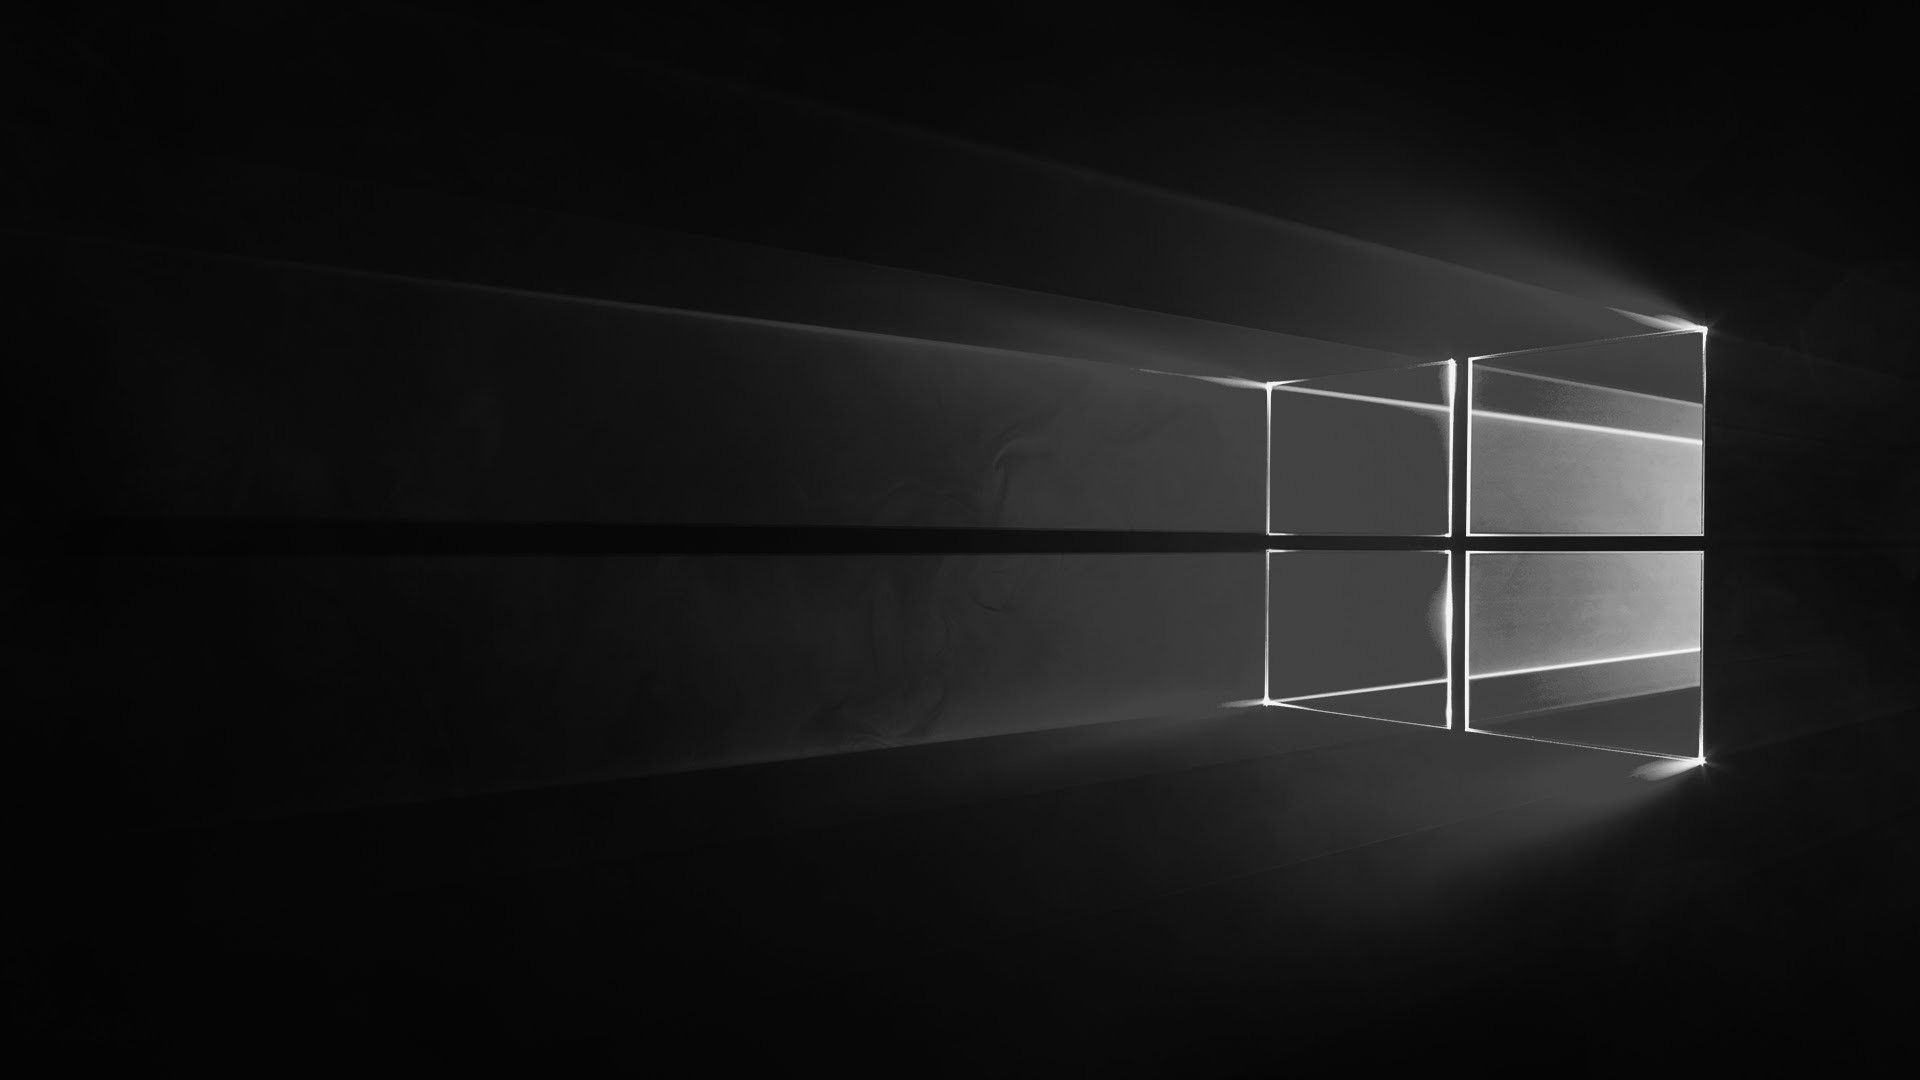 Download Gambar Wallpaper Hd Black Windows 10 Terbaru 2020